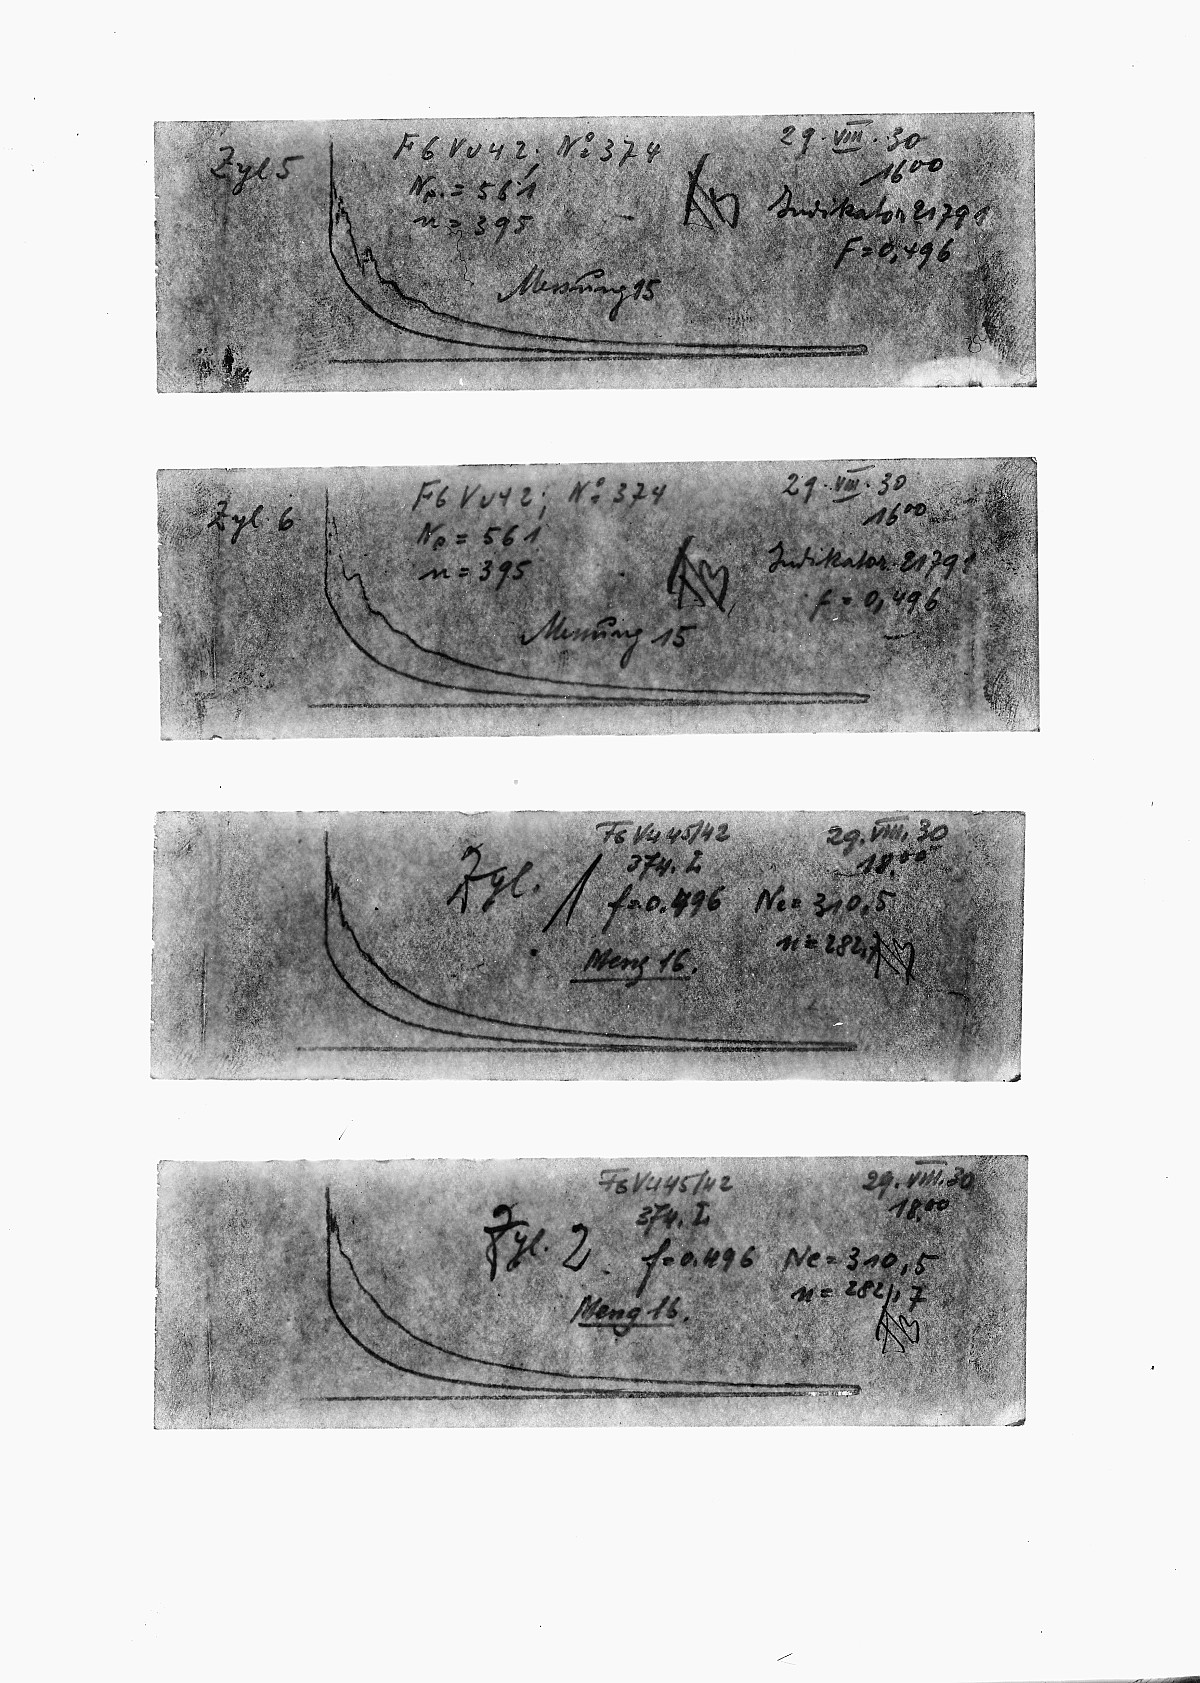 GFA 16/15184: Diagrams in the acceptance reports of GOMZY-LENINGRAD engine